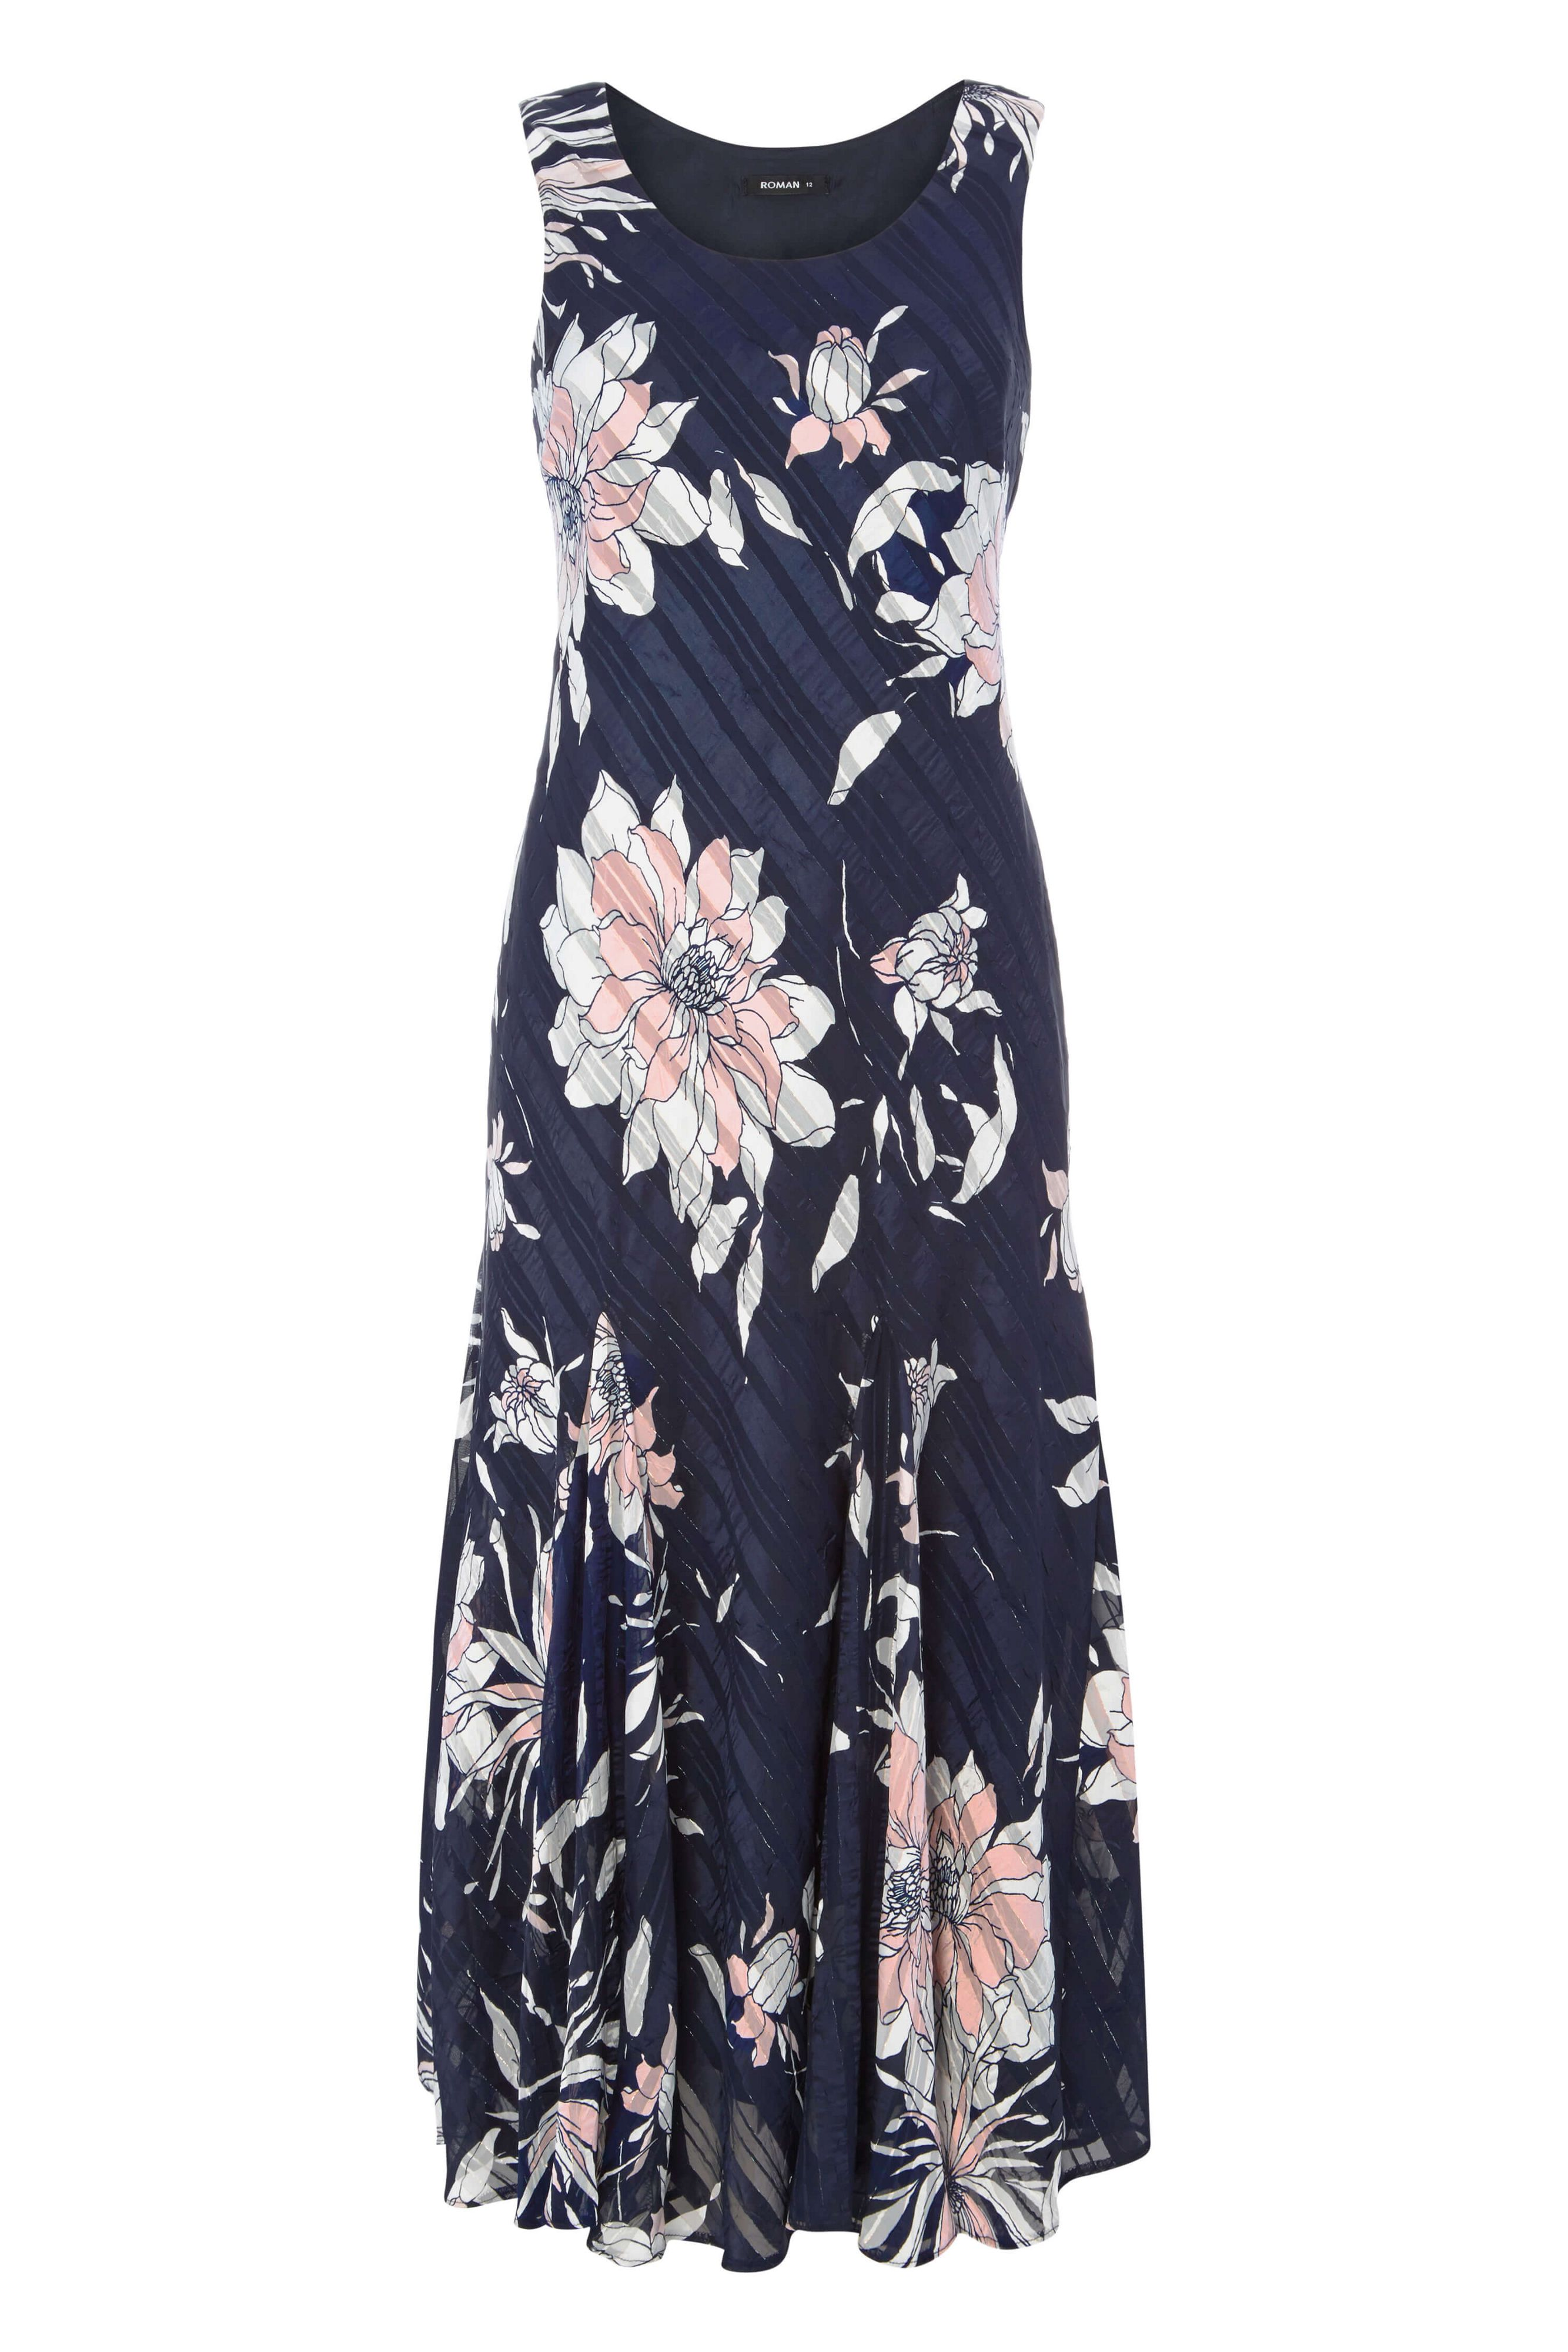 Roman Originals Floral Print Bias Dress, Blue